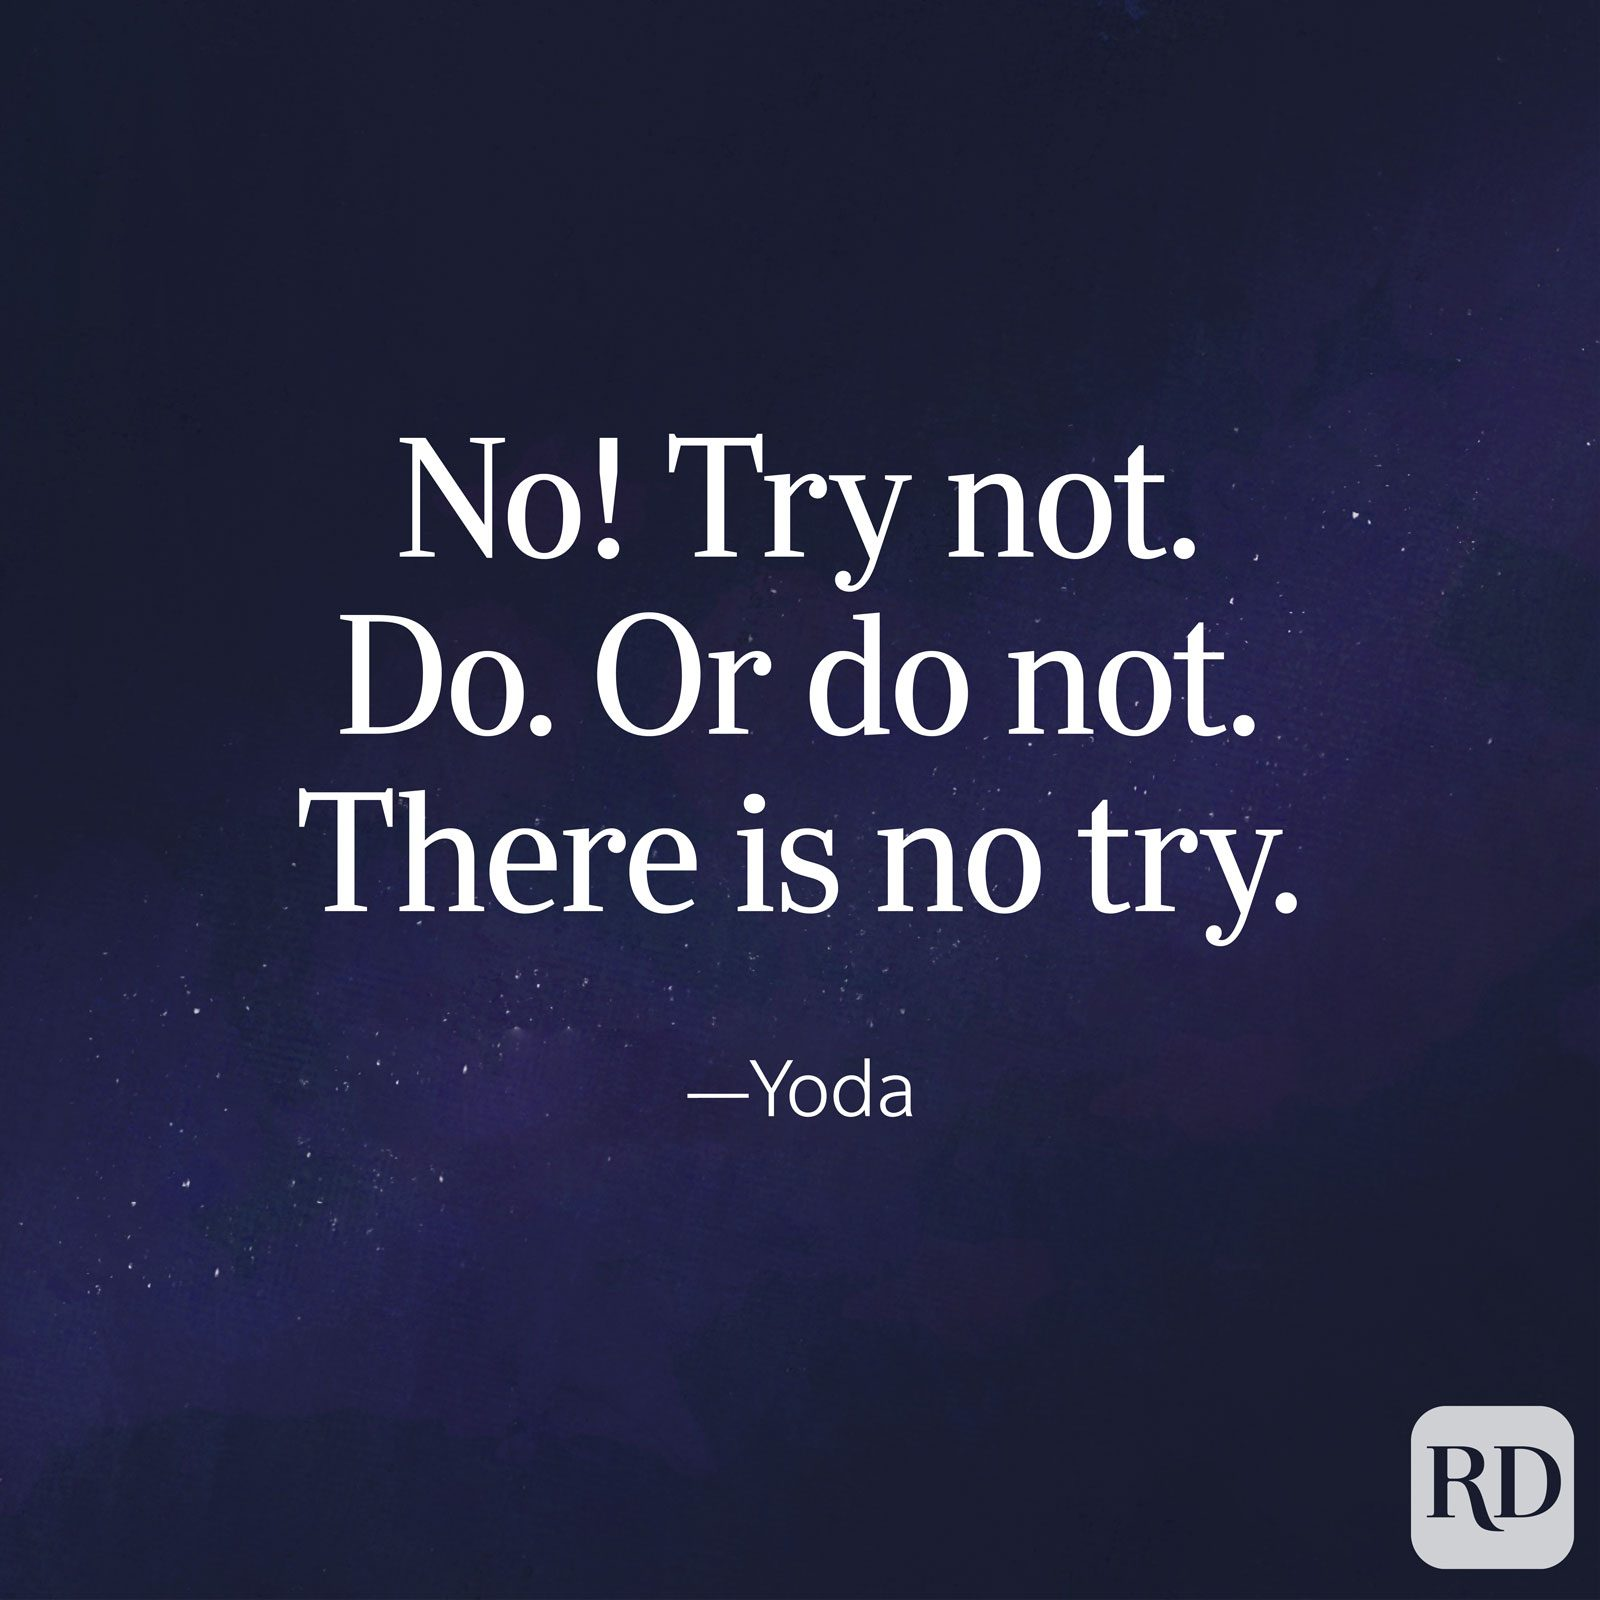 """No! Try not. Do. Or Not do. There is no try."" Yoda quote on a galaxy background"